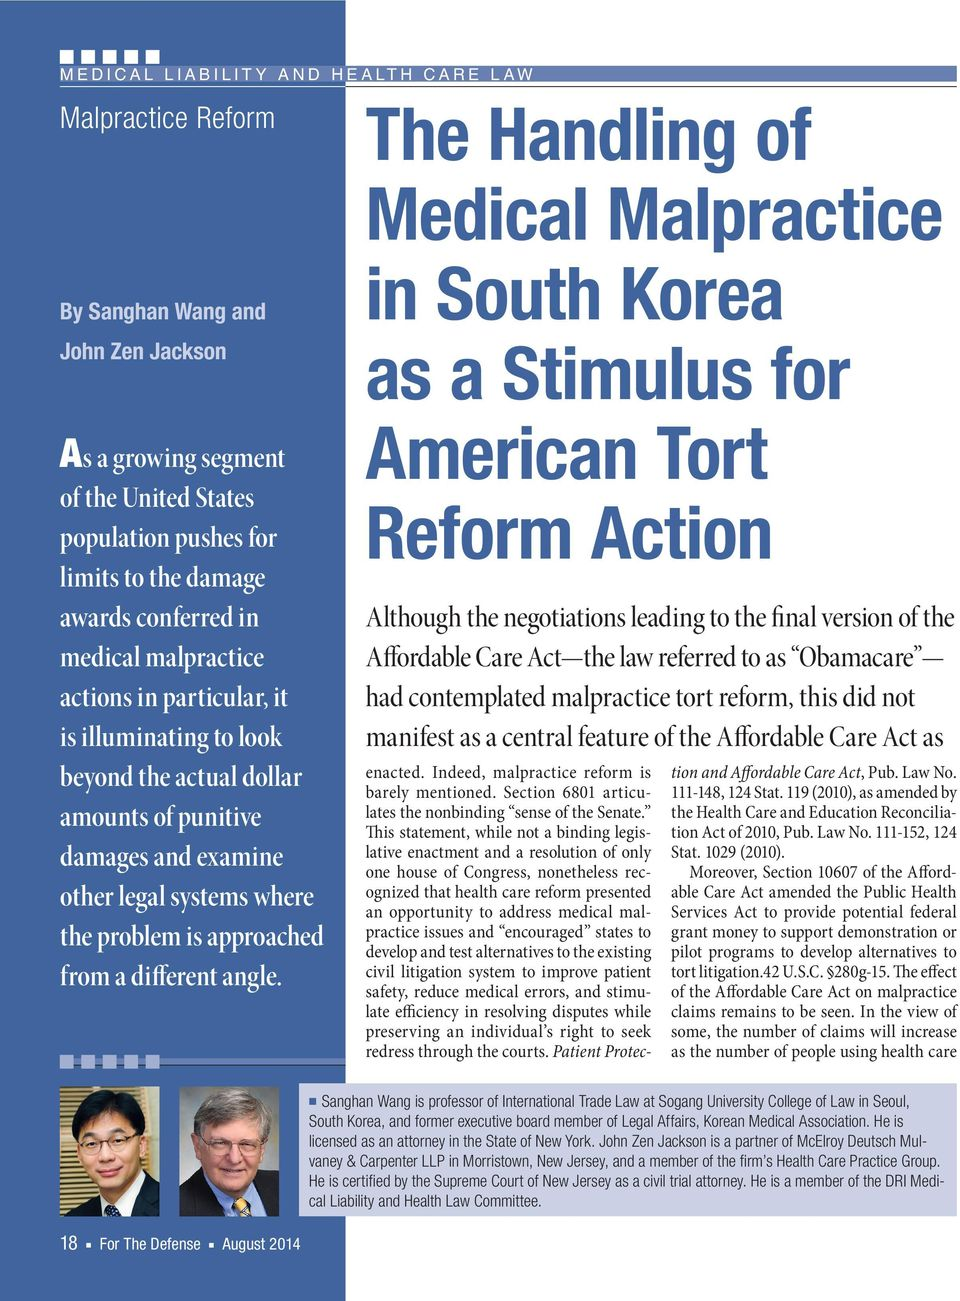 The Handling of Medical Malpractice in South Korea as a Stimulus for American Tort Reform Action Although the negotiations leading to the final version of the Affordable Care Act the law referred to